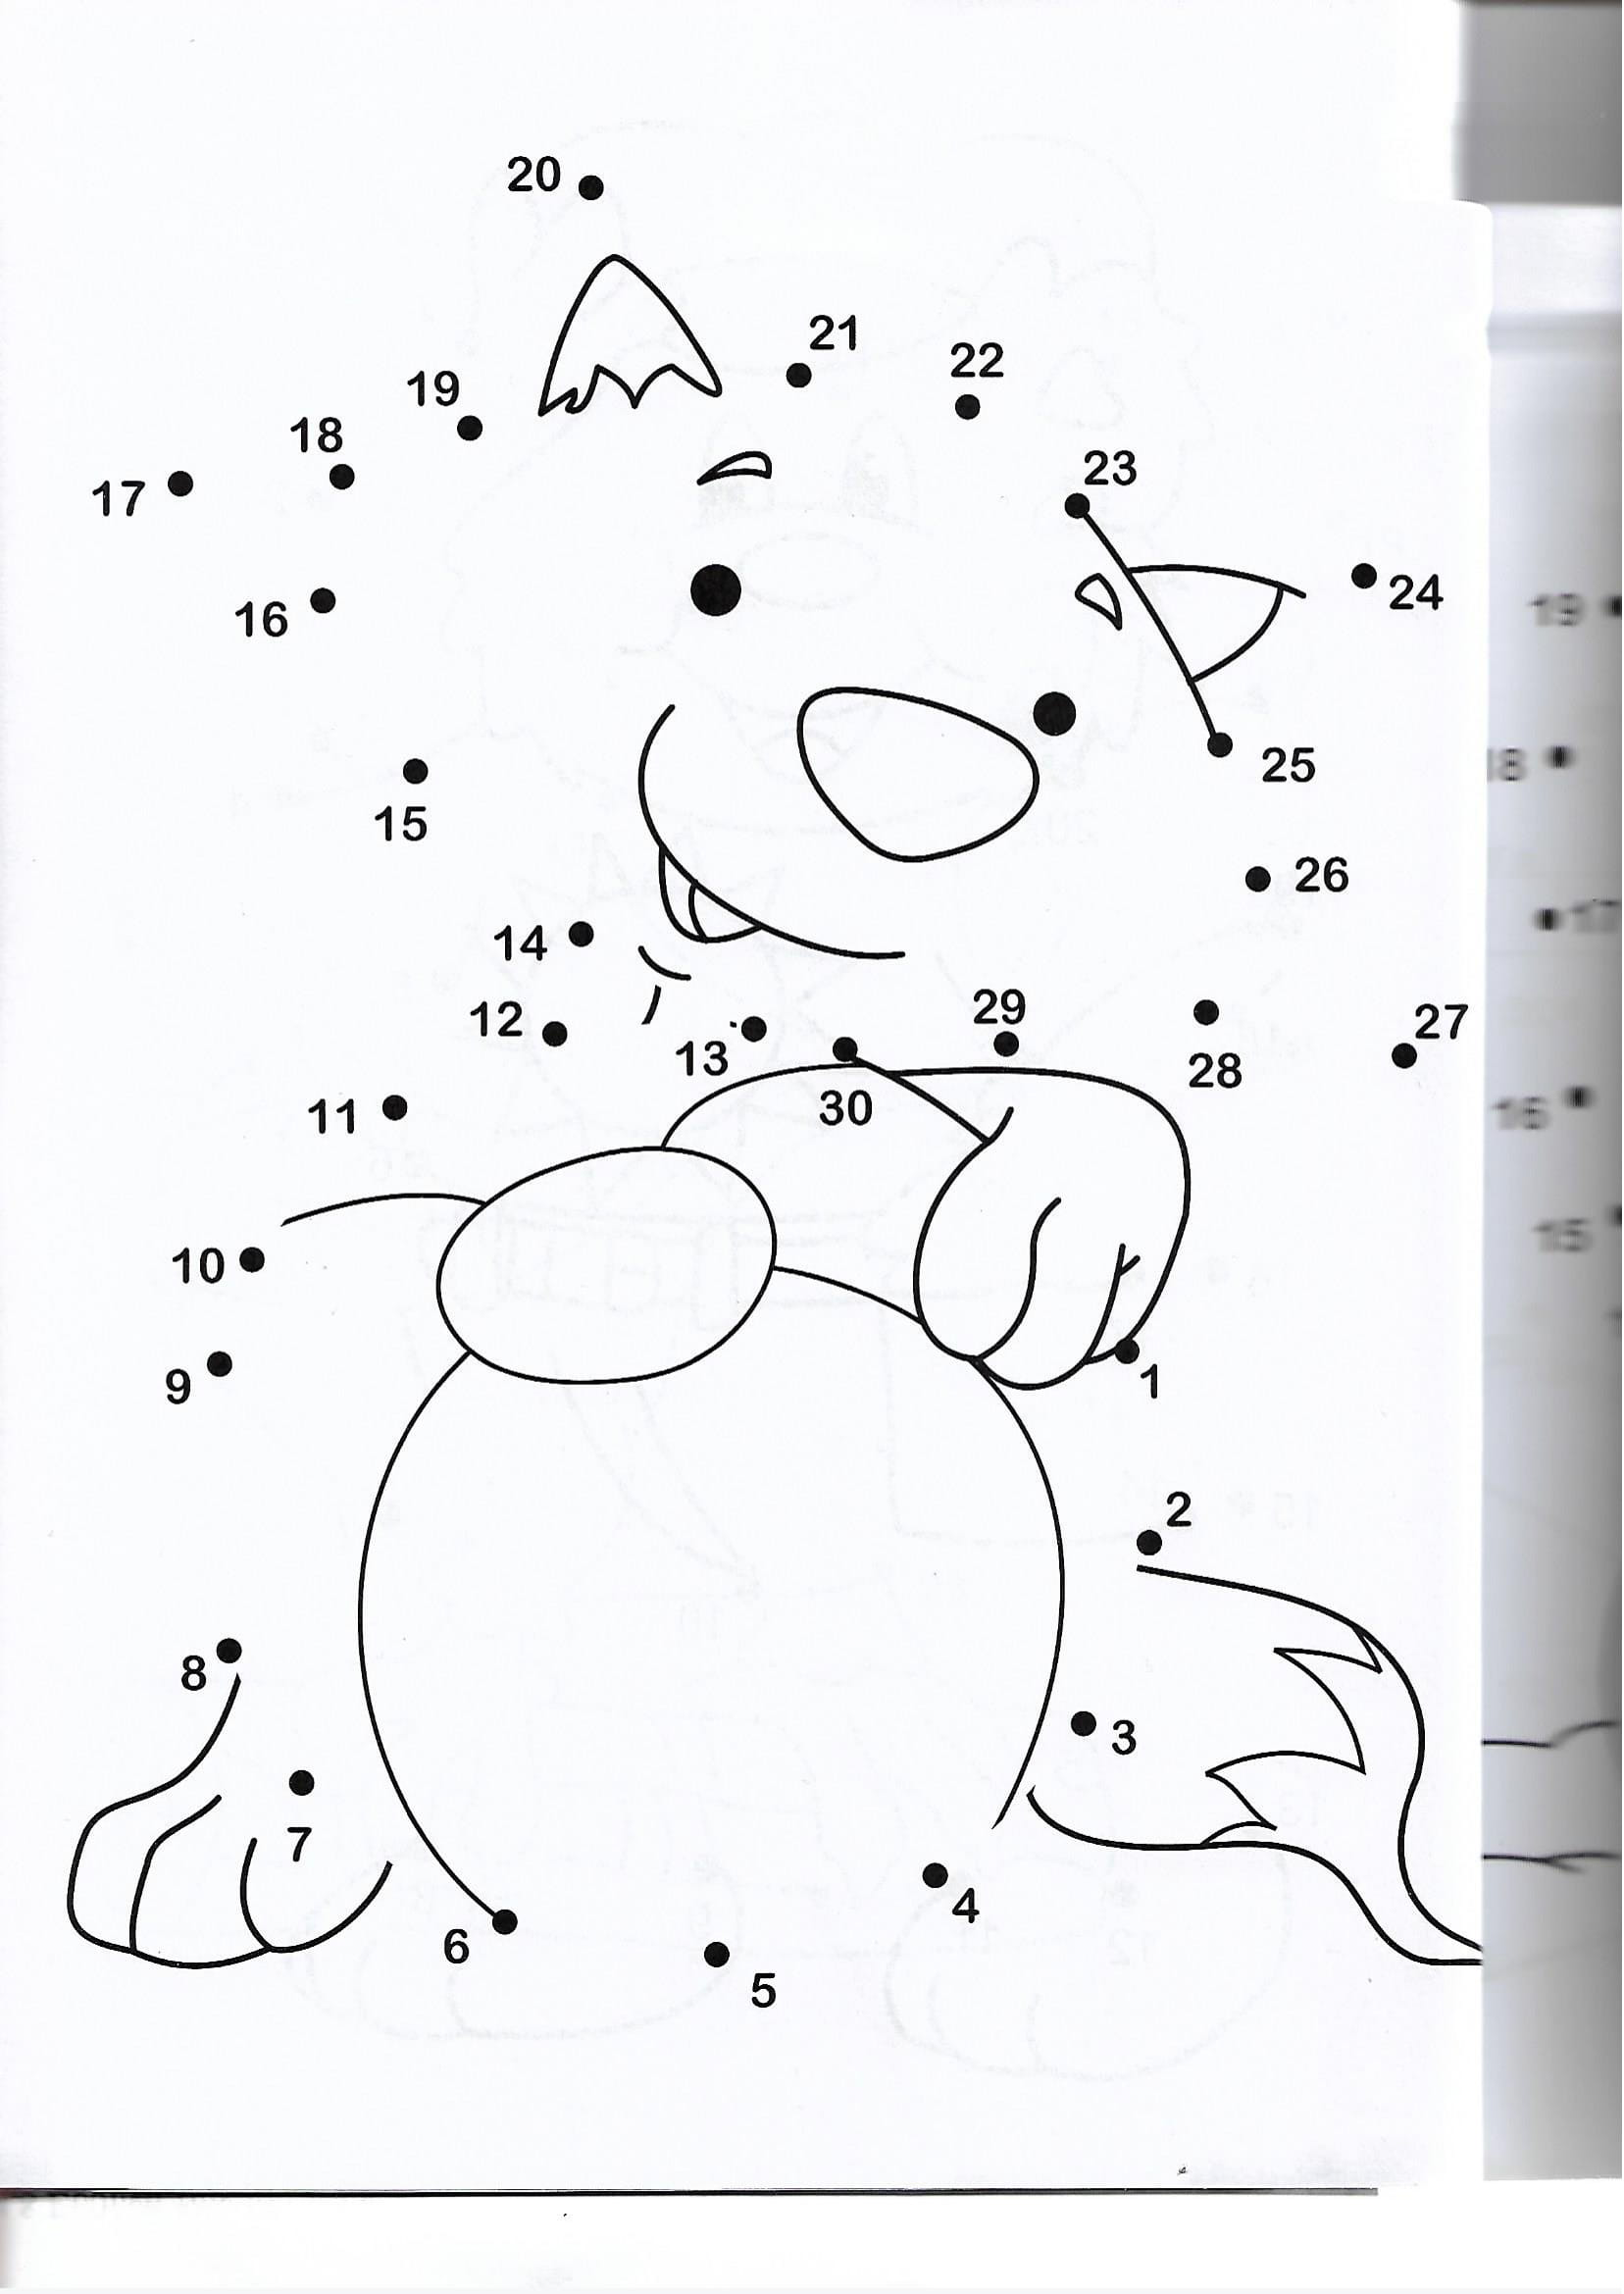 racoon animal printable dot to dot – connect the dots numbers 20 20 ...